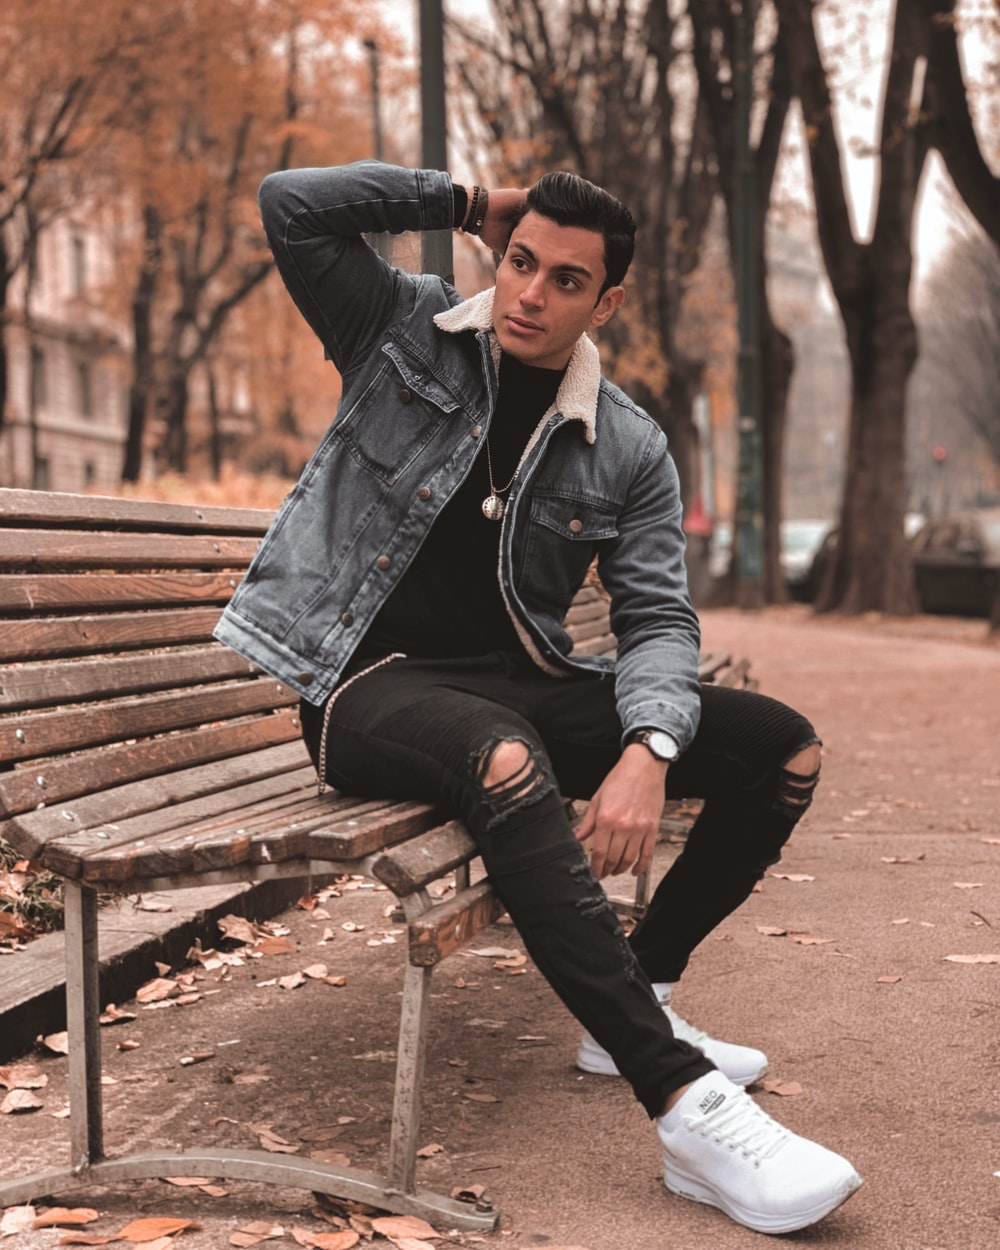 man in black leather jacket sitting on brown wooden bench during daytime